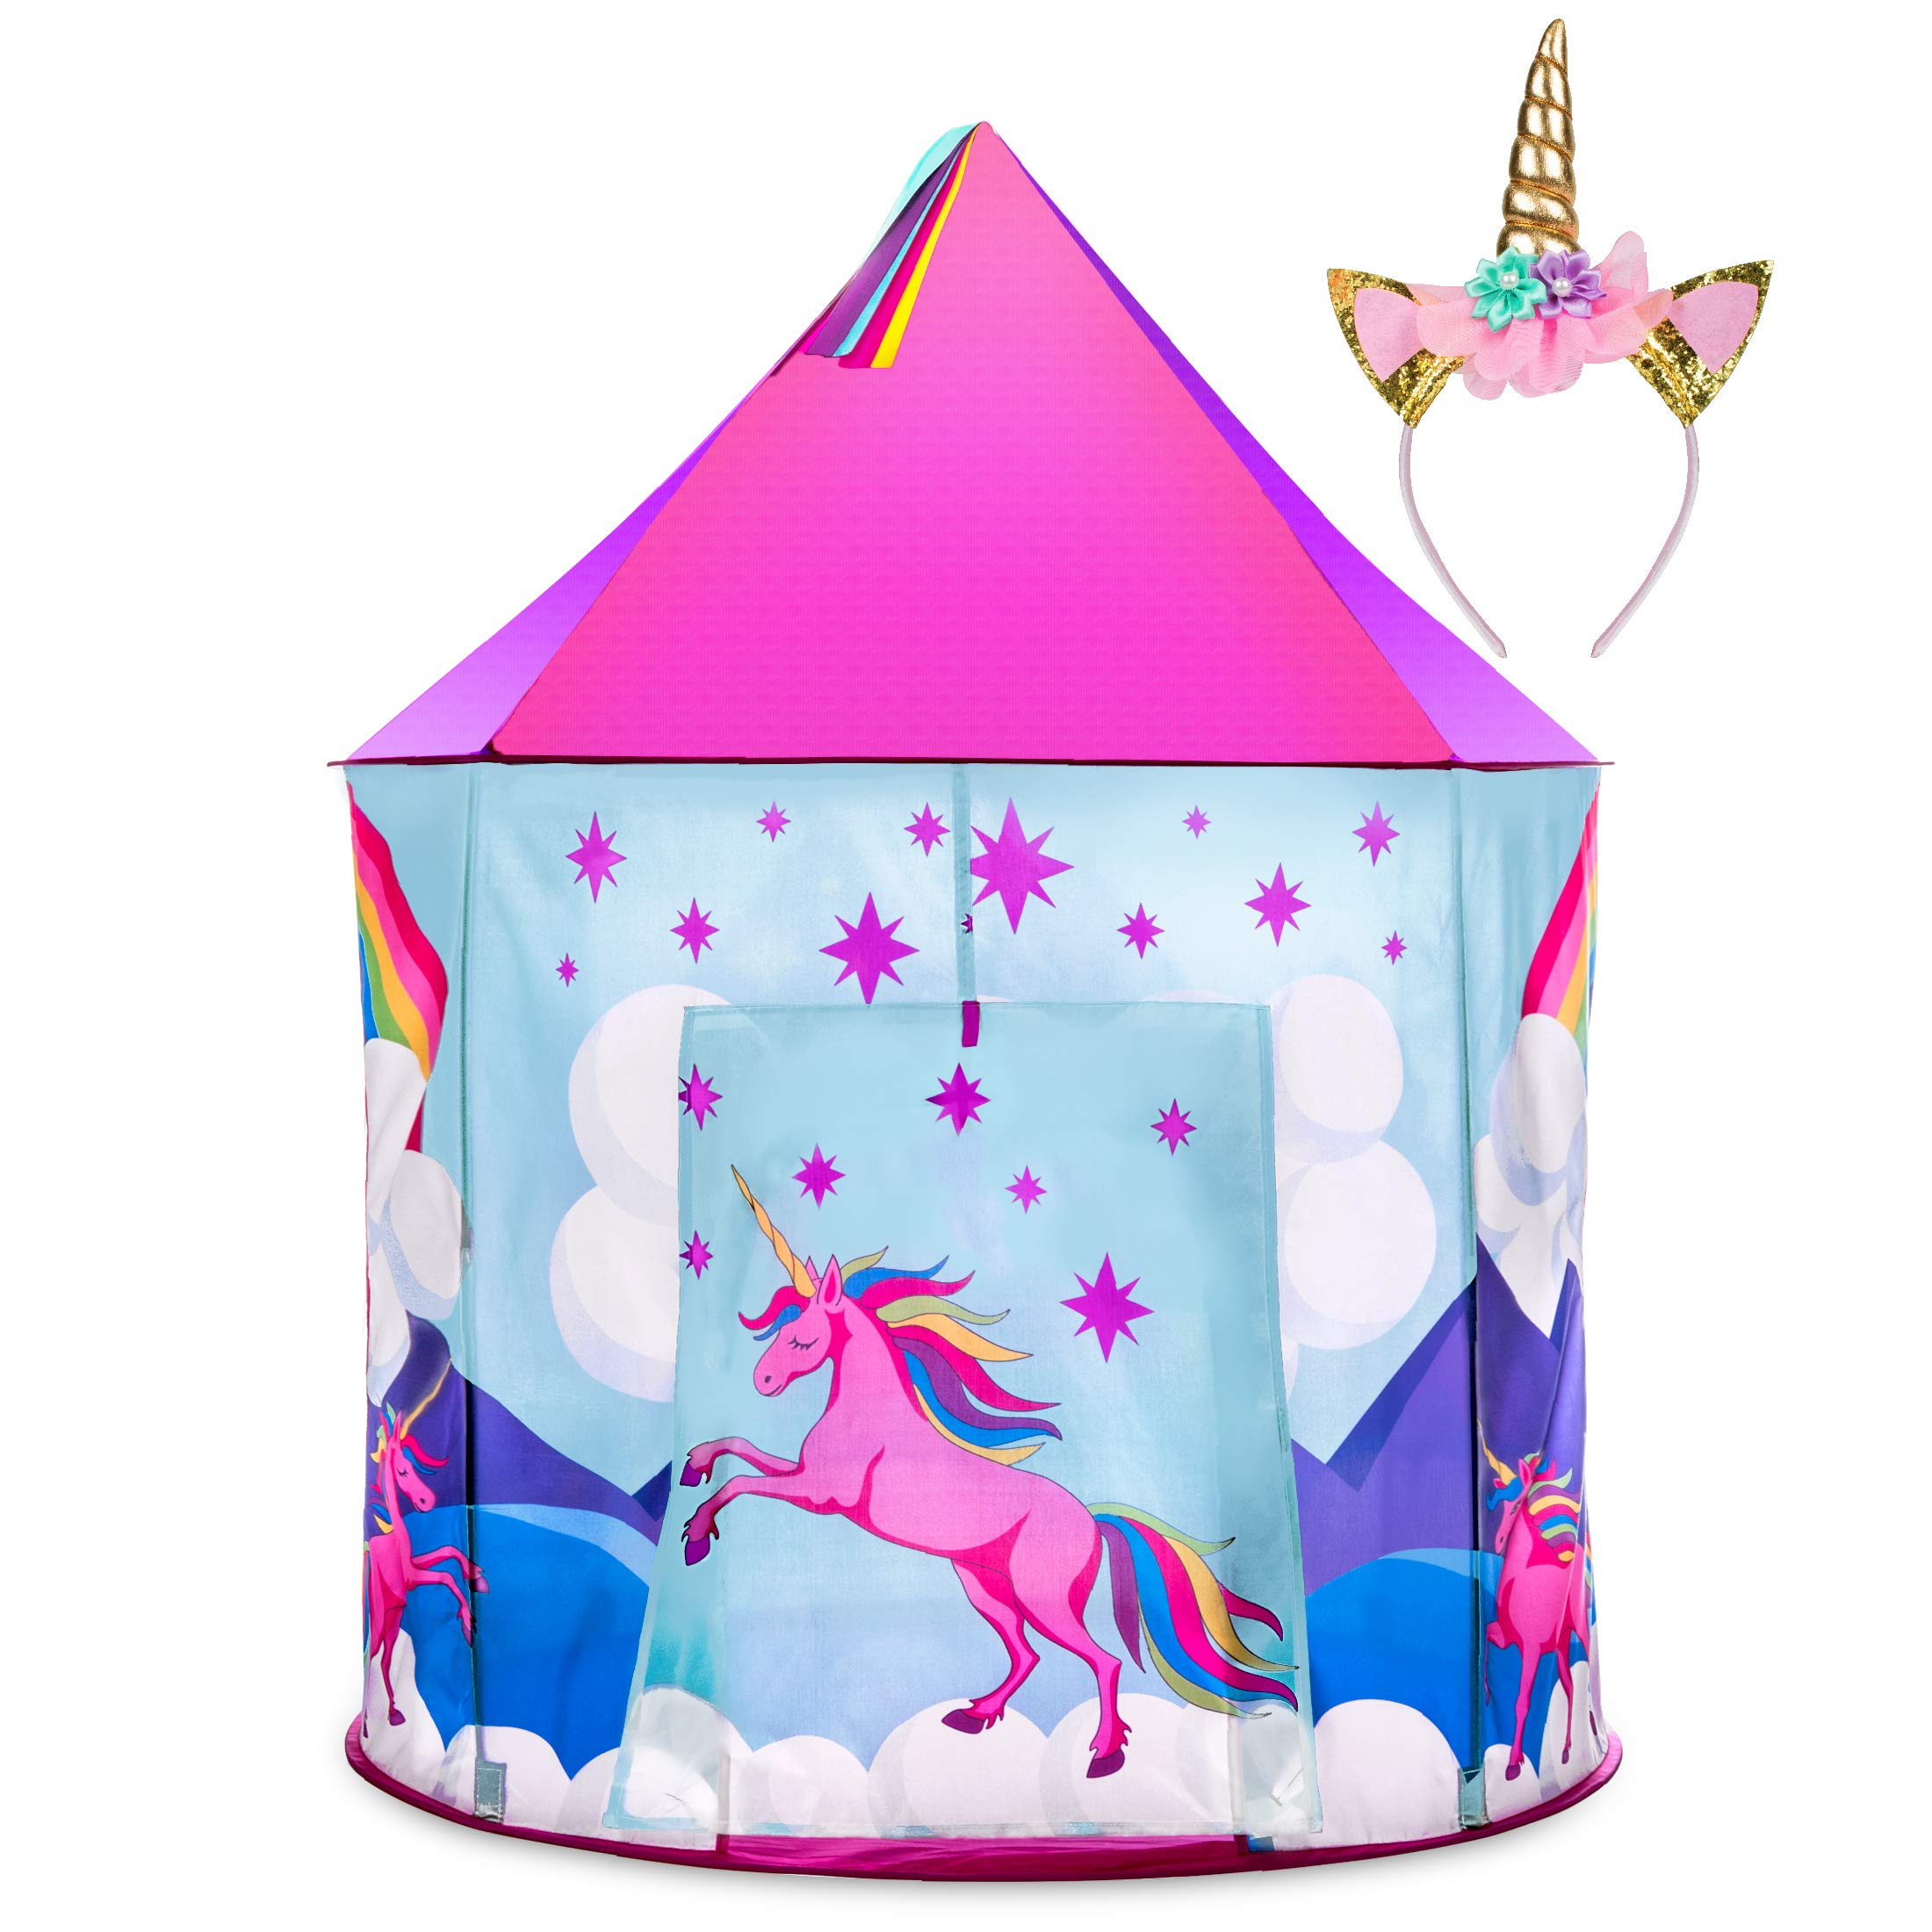 Unicorn Tent for Girls - Unicorn Pop Up Kids Tent w/ Unicorn Headband and Case, Unicorn Toys for Girls Indoor Princess Castle Kids Play Tent (Pink)